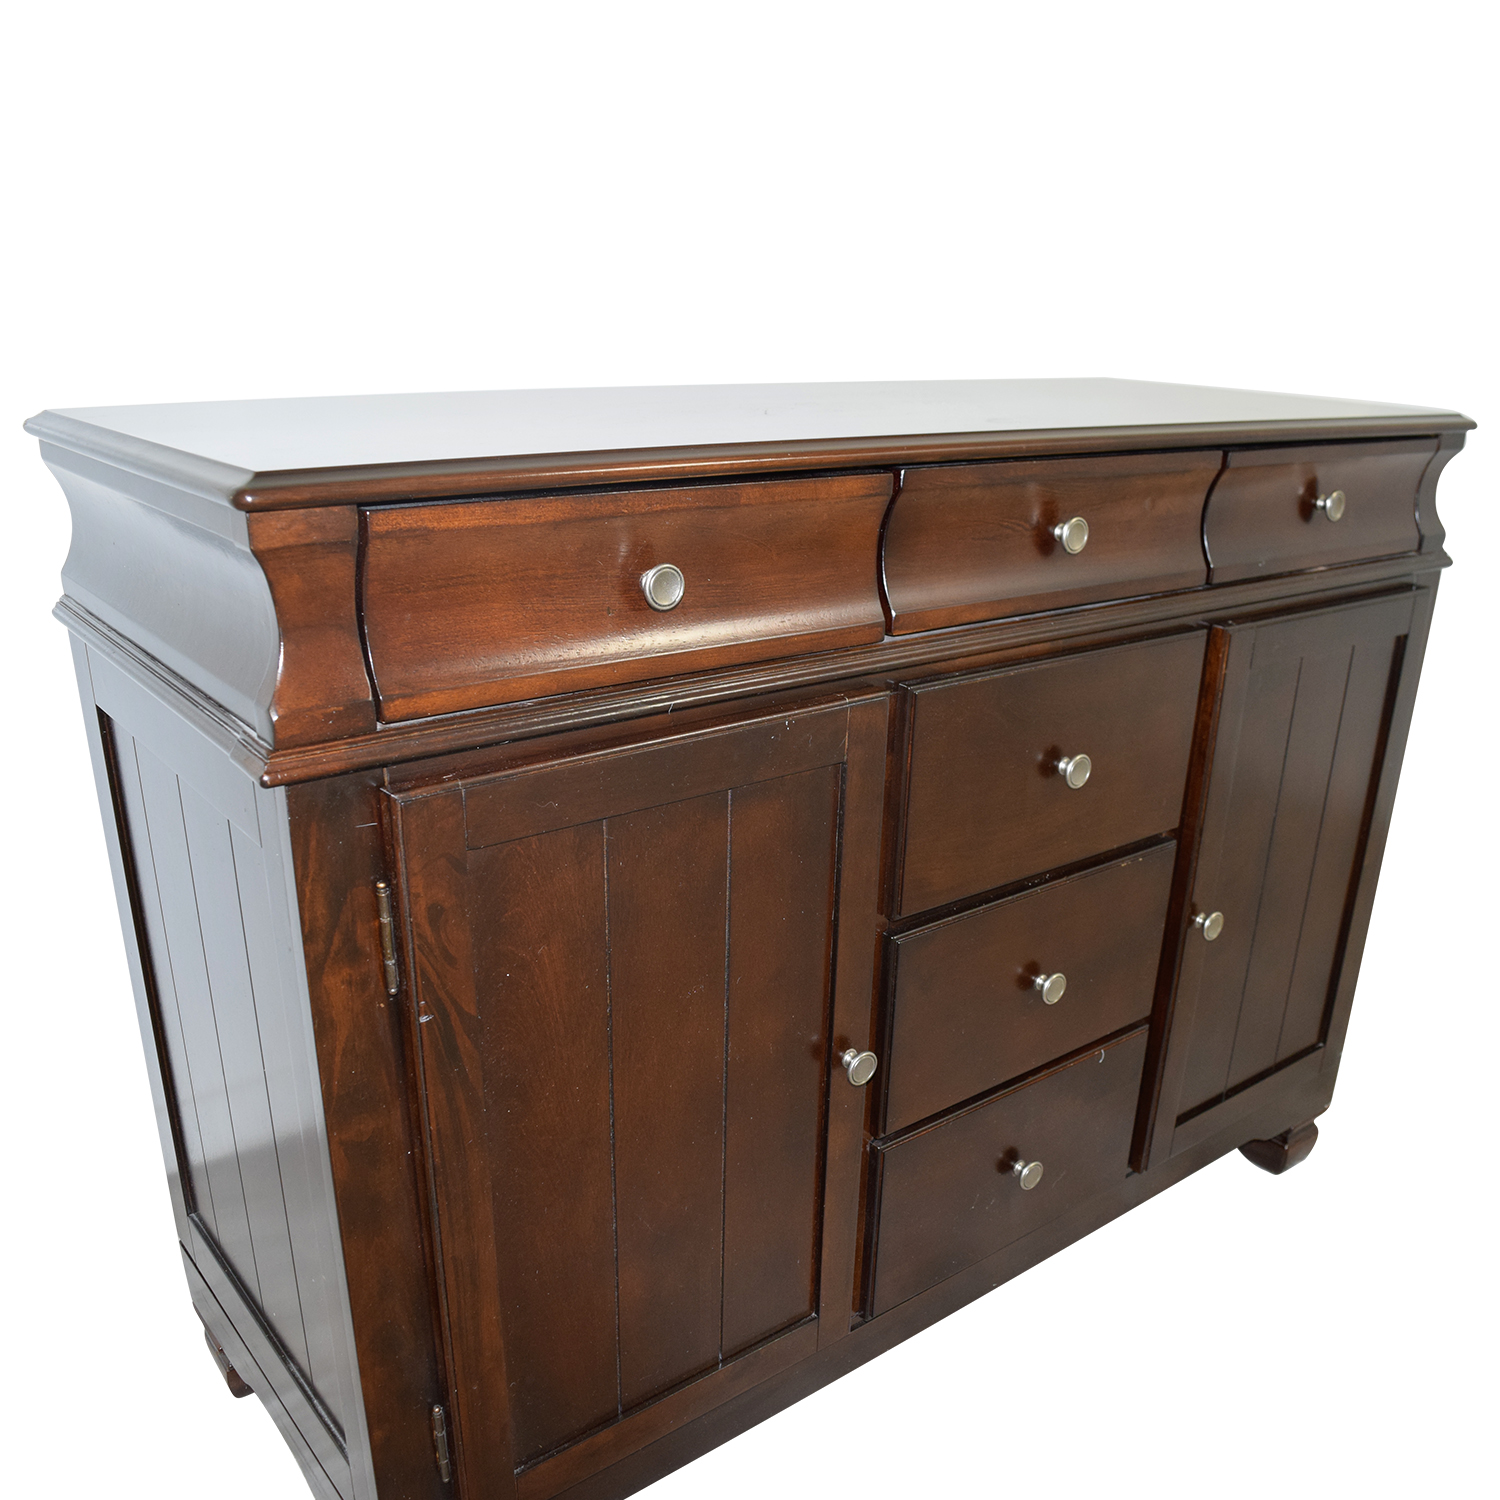 Hayley Wood Dining Room Buffet Cabinets Sideboards